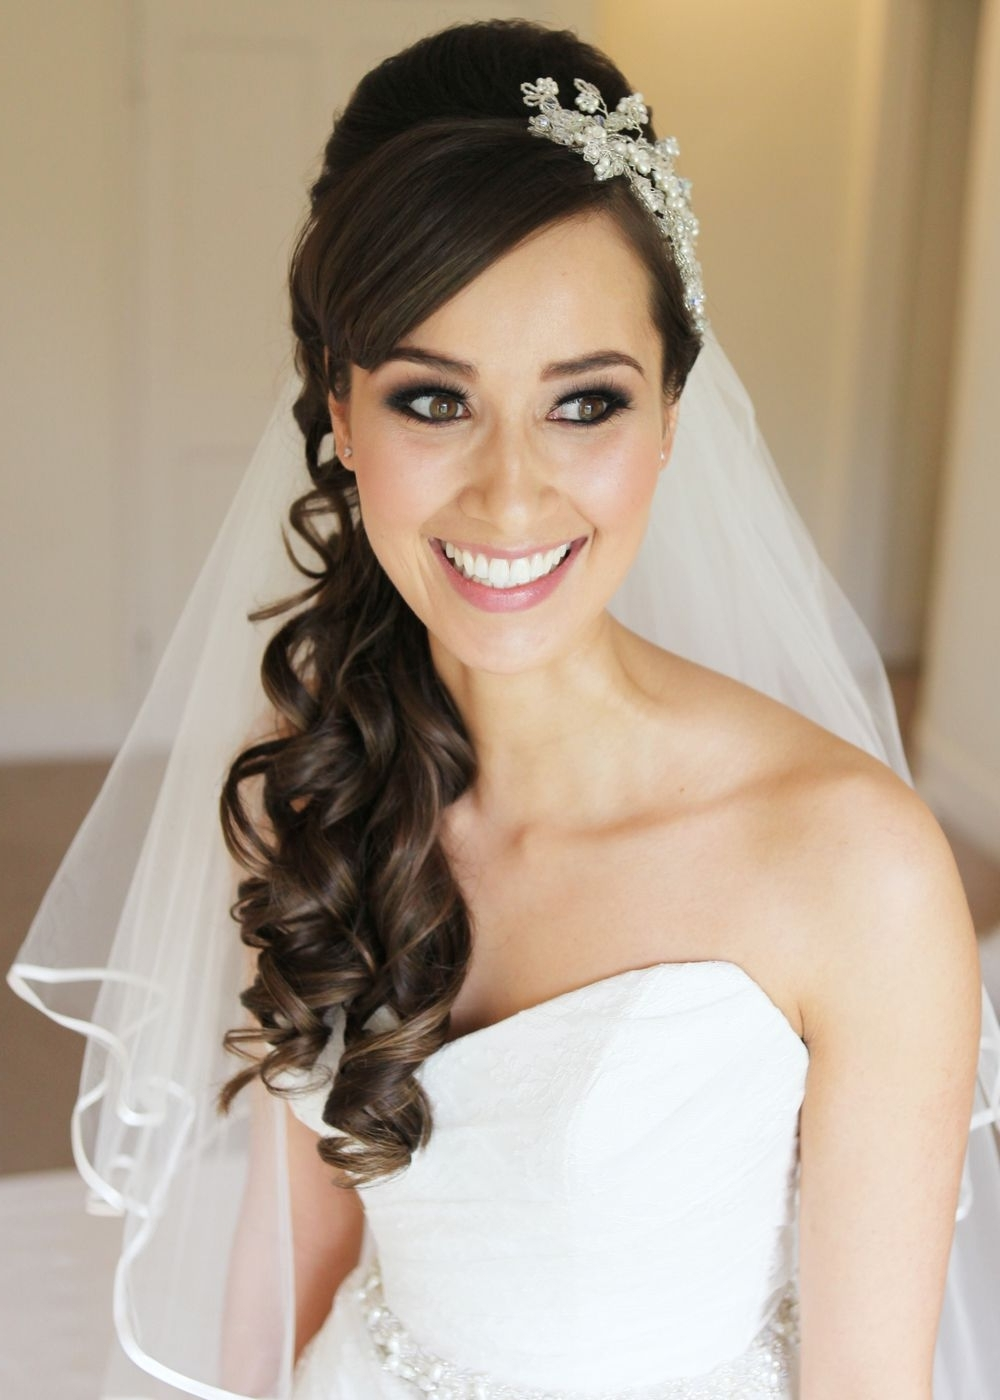 Pinterest Throughout Well Known Wedding Hairstyles Without Veil (View 8 of 15)